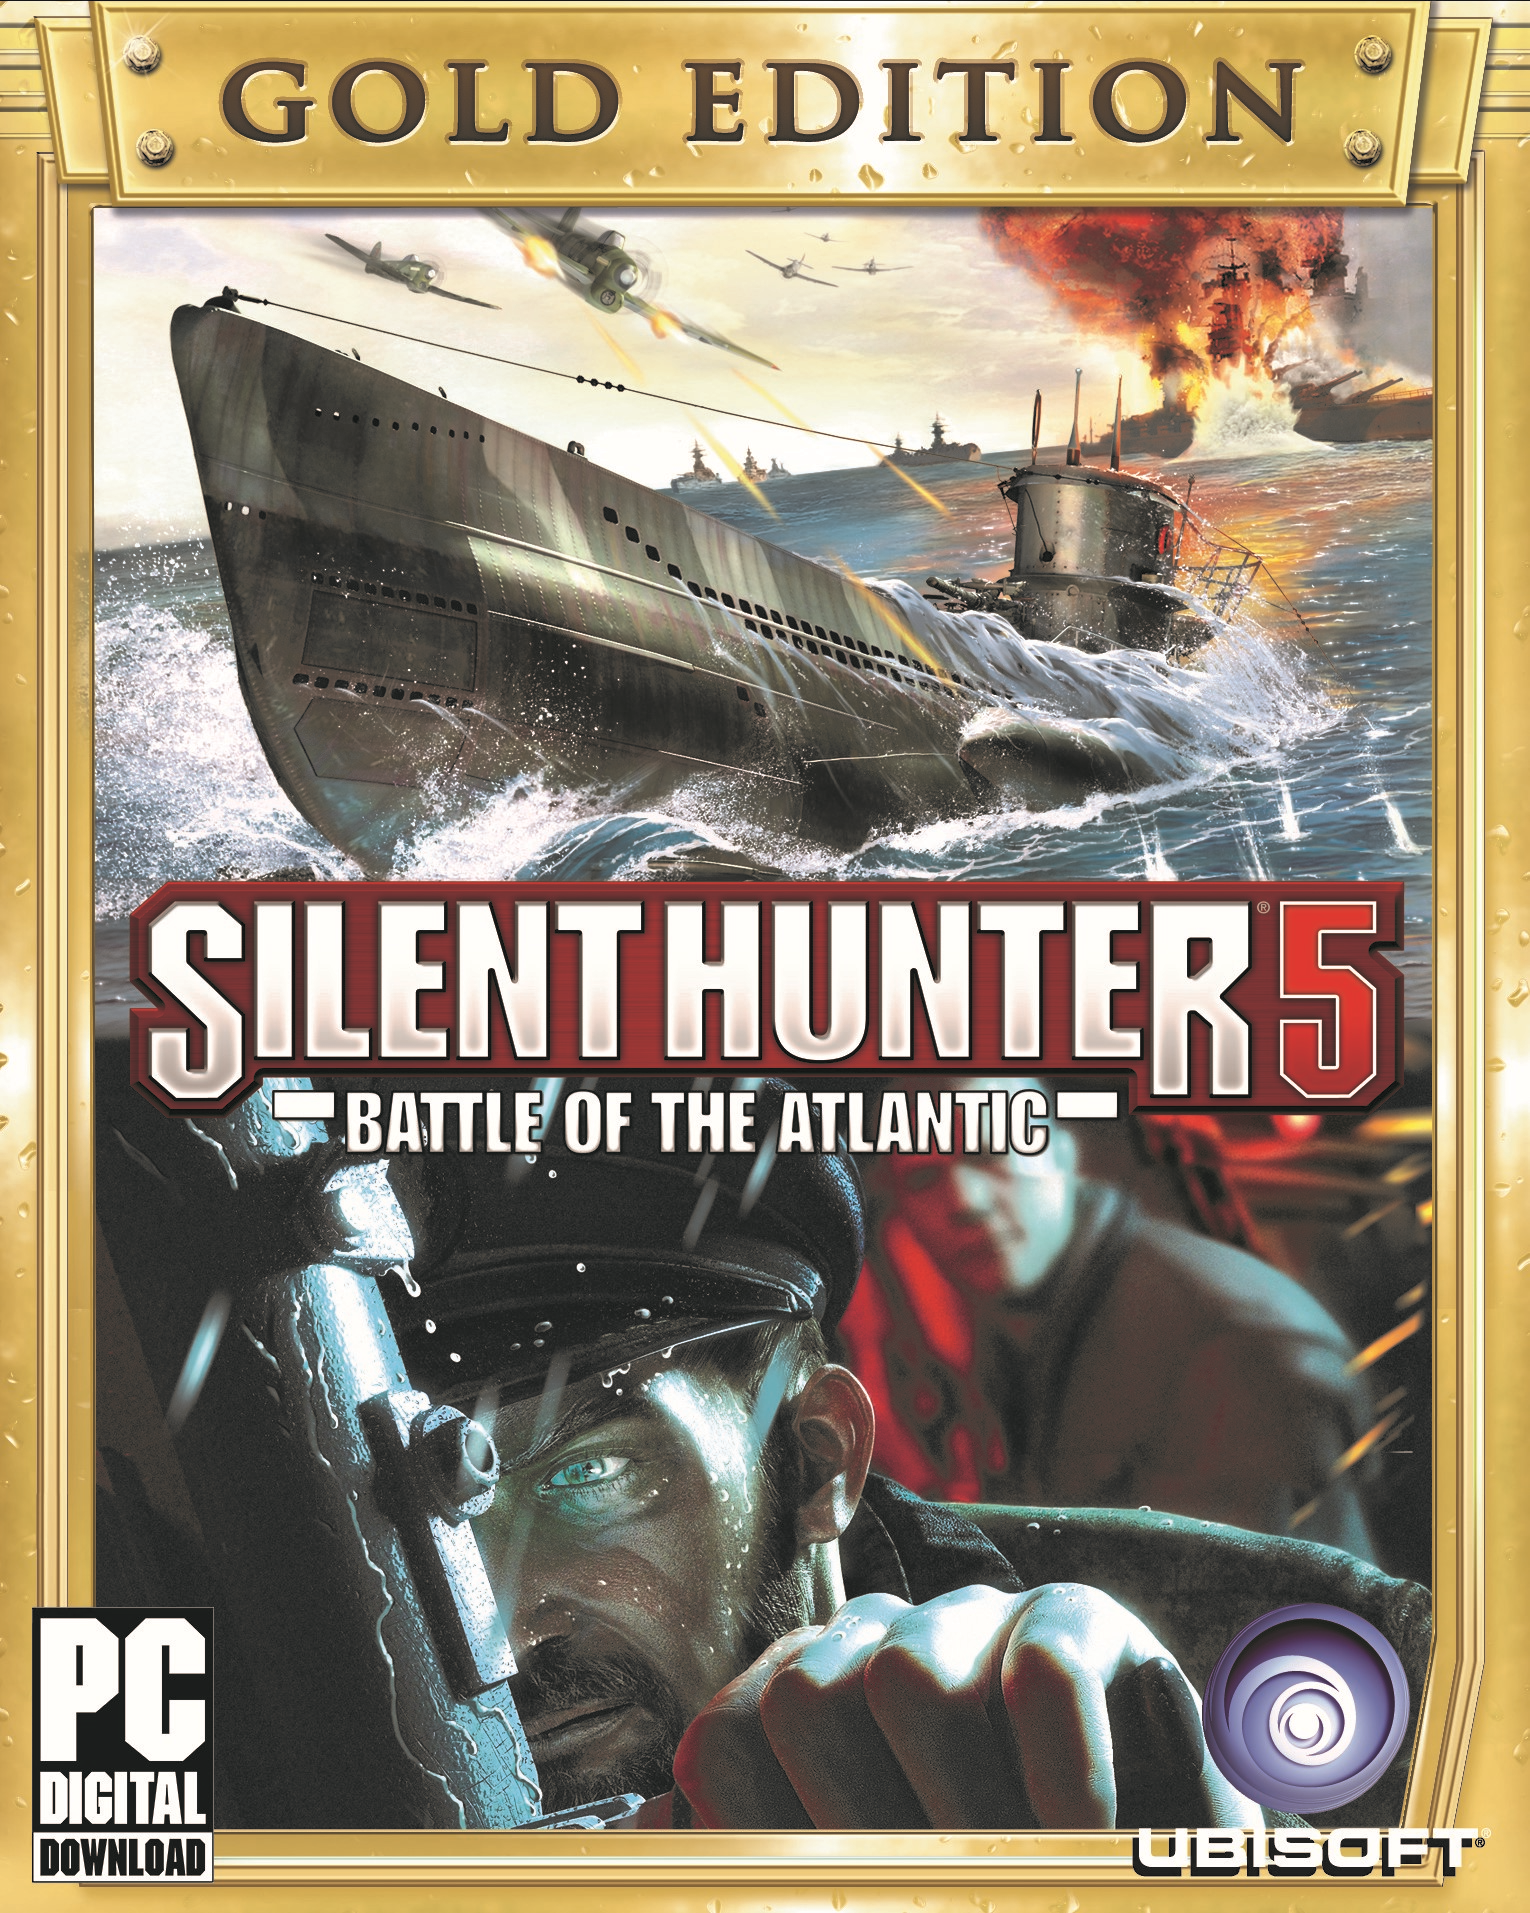 Silent Hunter 5: Battle of the Atlantic - Gold Edition [PC